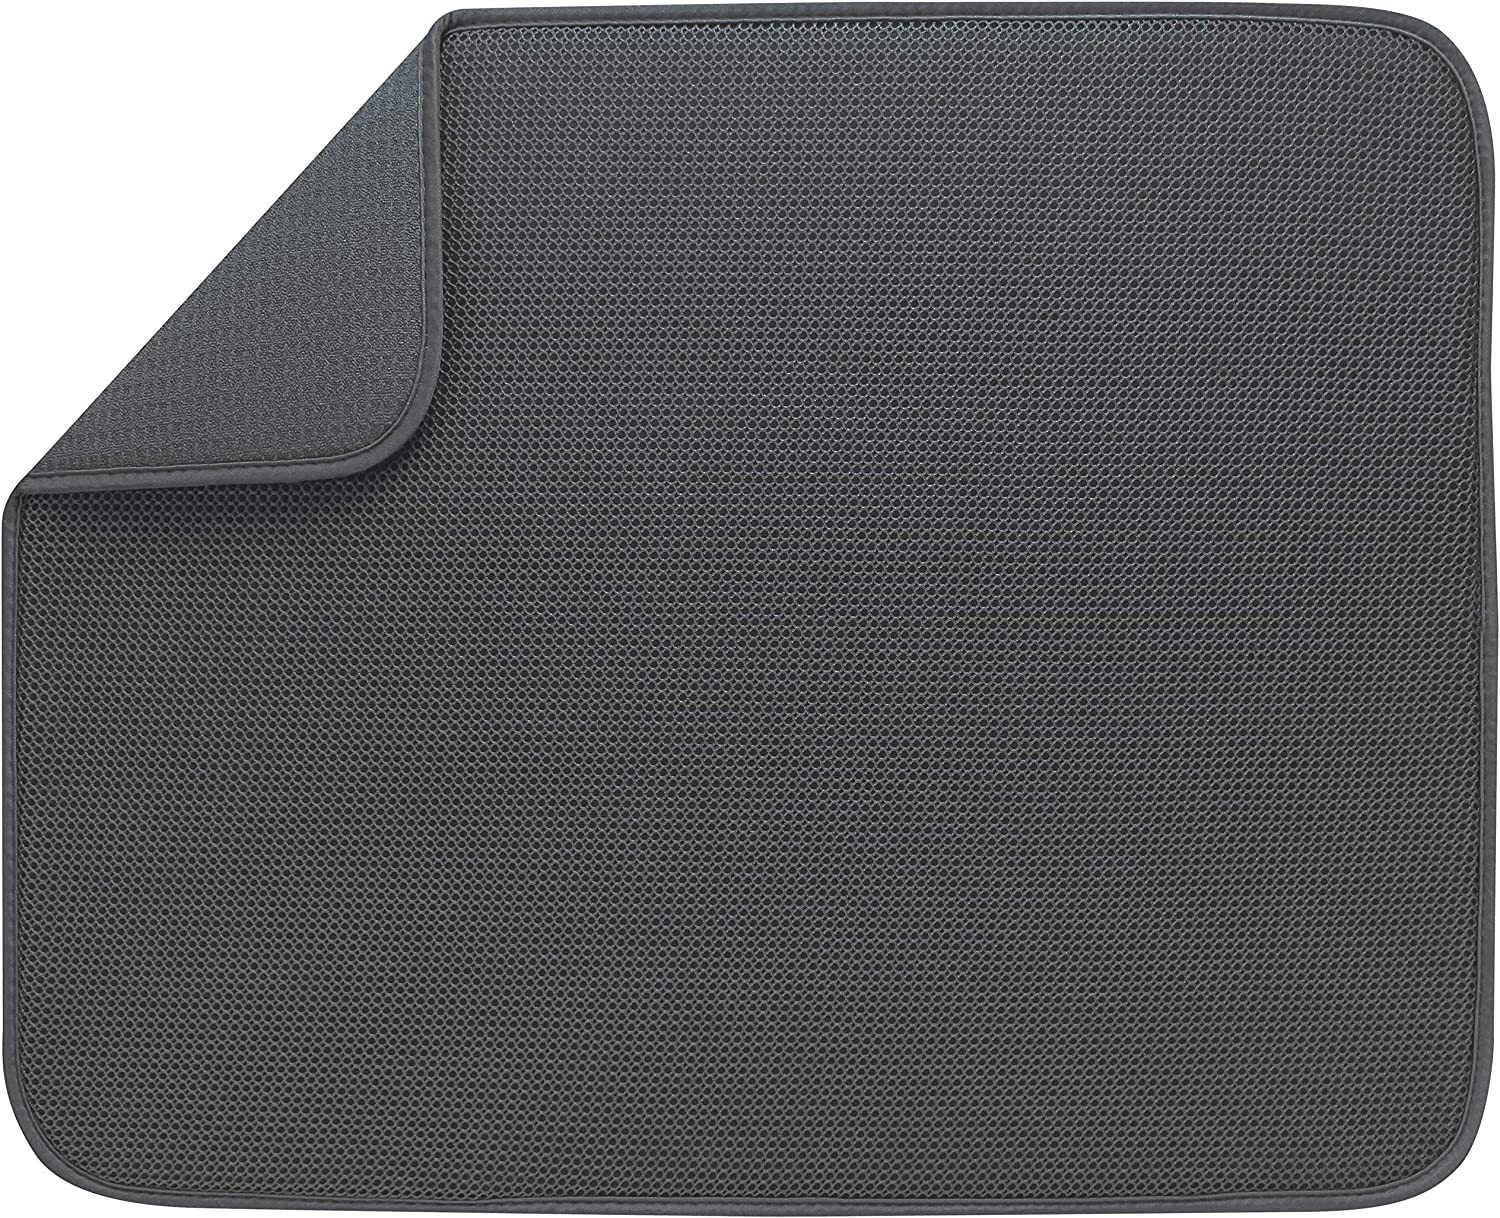 S&T INC. Absorbent, Reversible XL Microfiber Dish Drying Mat for Kitchen, 18 Inch x 24 Inch, Charcoal Mesh